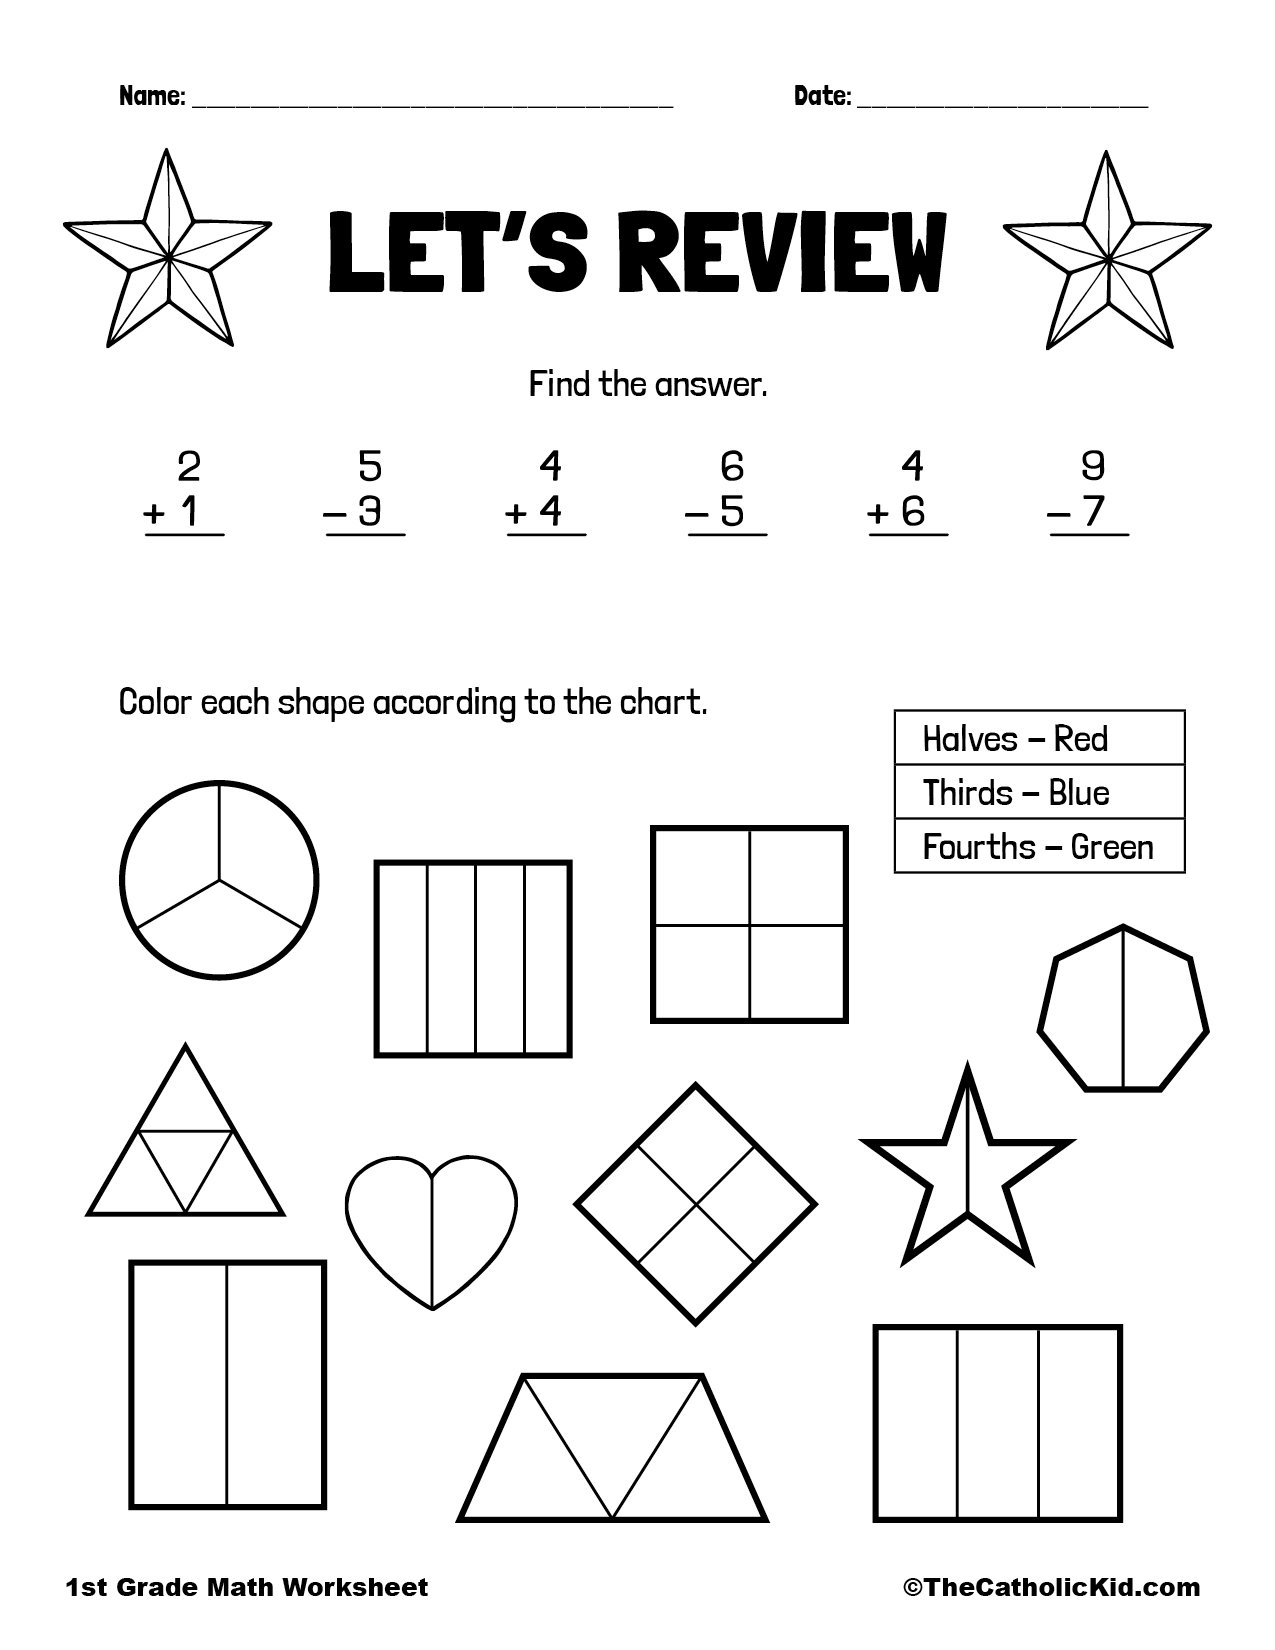 Add, Subtract & Fractions - 1st Grade Math Worksheet Catholic